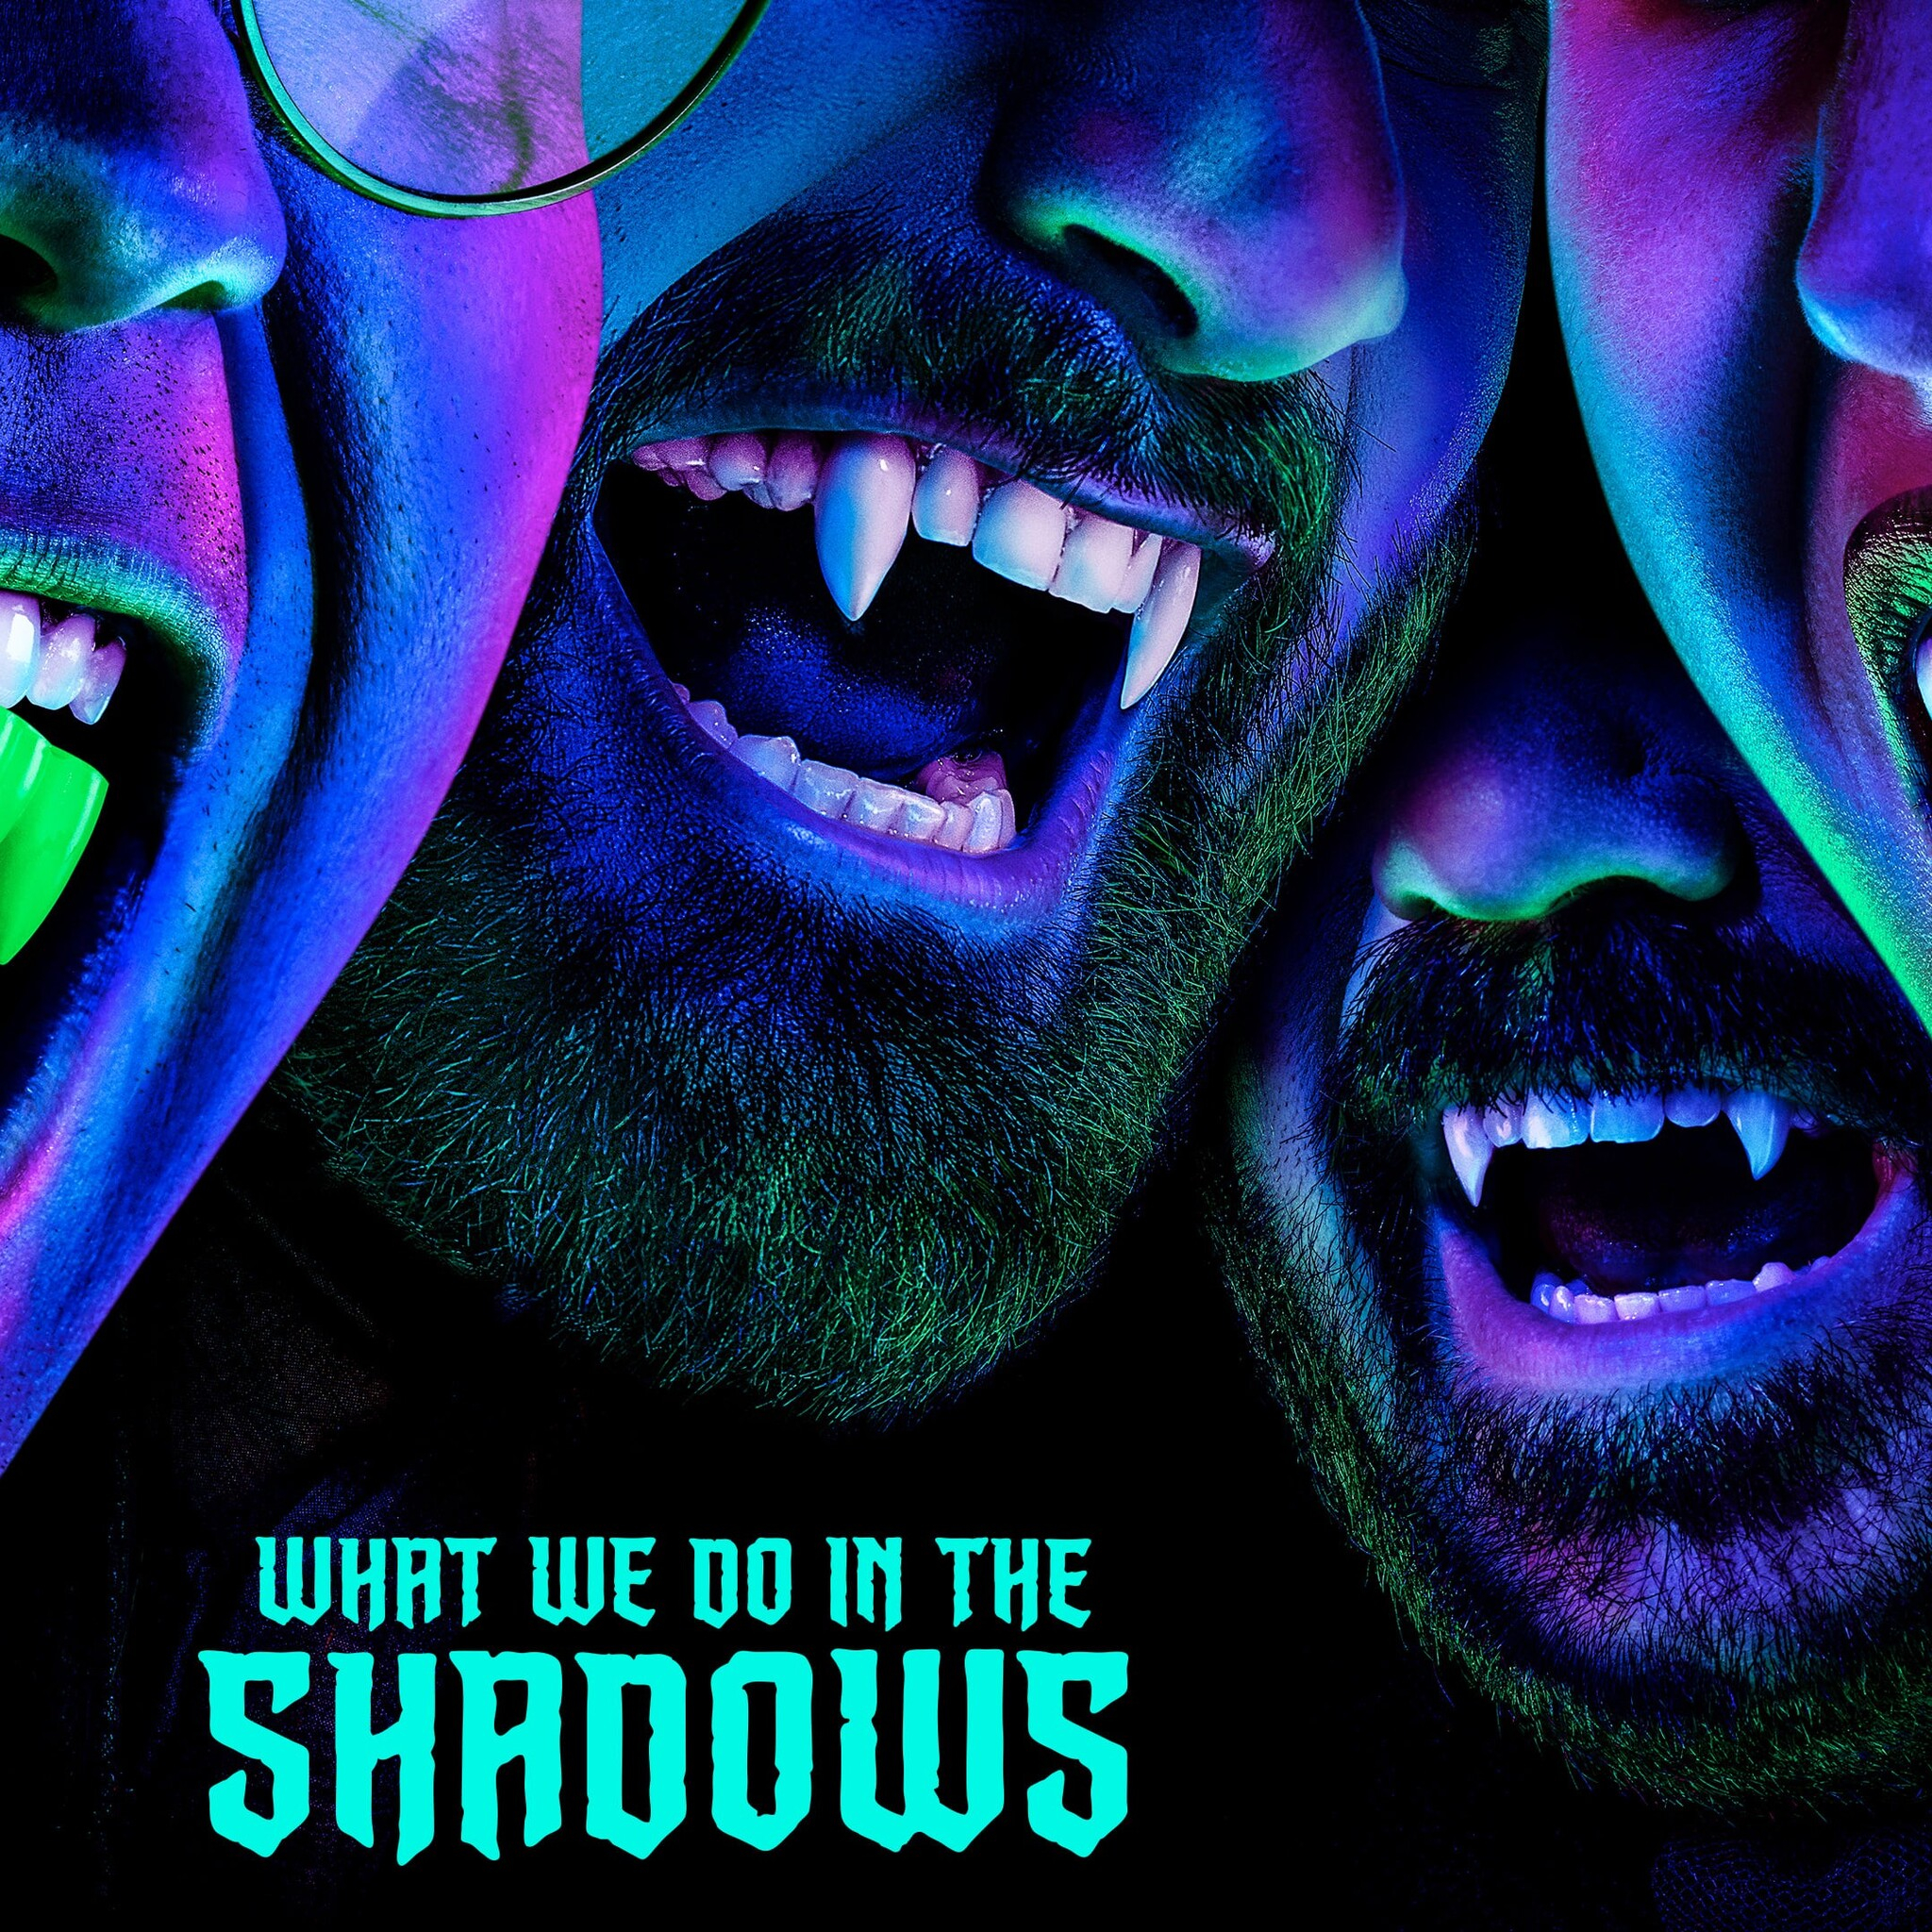 what we do in the shadows tv show 4k